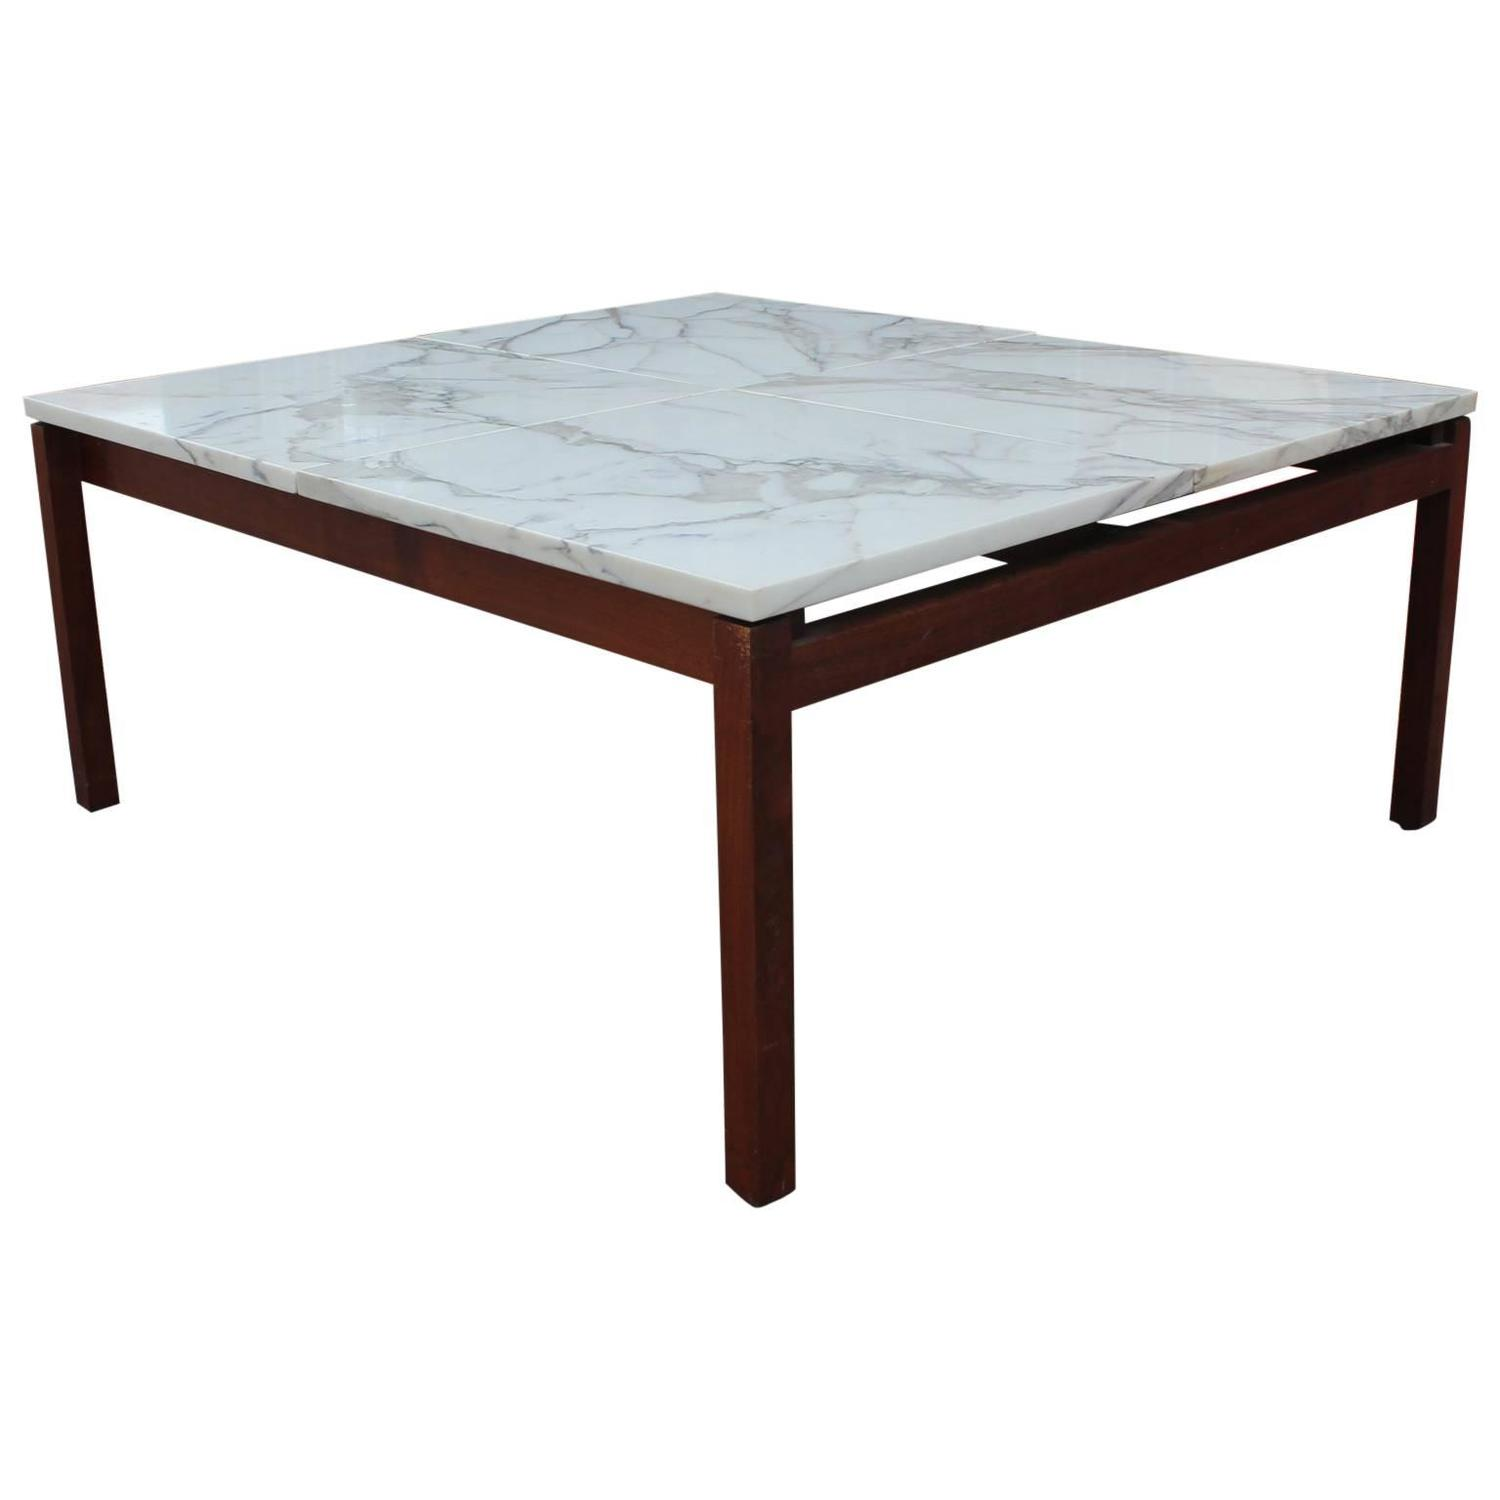 Modern Marble Square Knoll Lewis Butler Coffee Table with Walnut